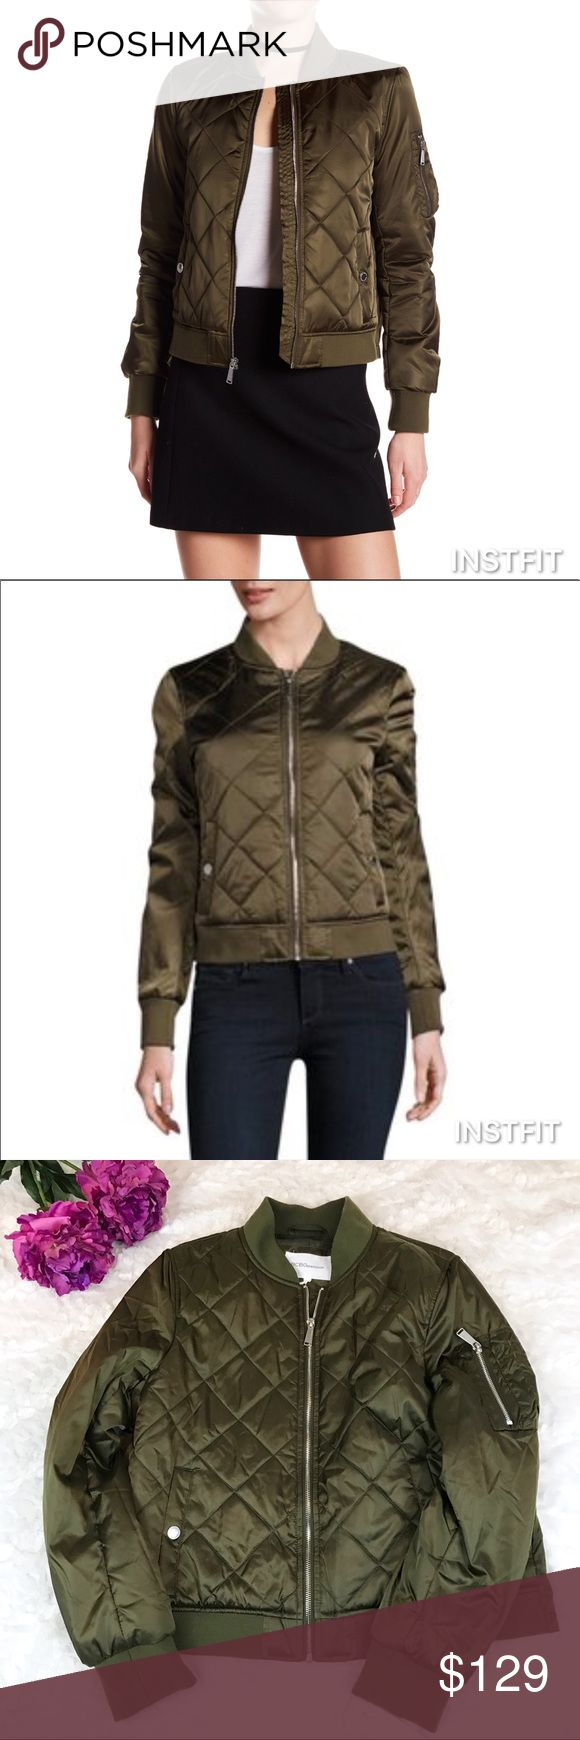 """BCBGeneration Olive Quilted Bomber Jacket BCBGeneration Olive Quilted Bomber Jacket. New with tags! Olive/Army Green Quilted Bomber Jacket with Silver Buttons and Zipper. Length: 24"""" Bust: 22"""" Flat Across Arm: 25"""" BCBGeneration Jackets & Coats"""